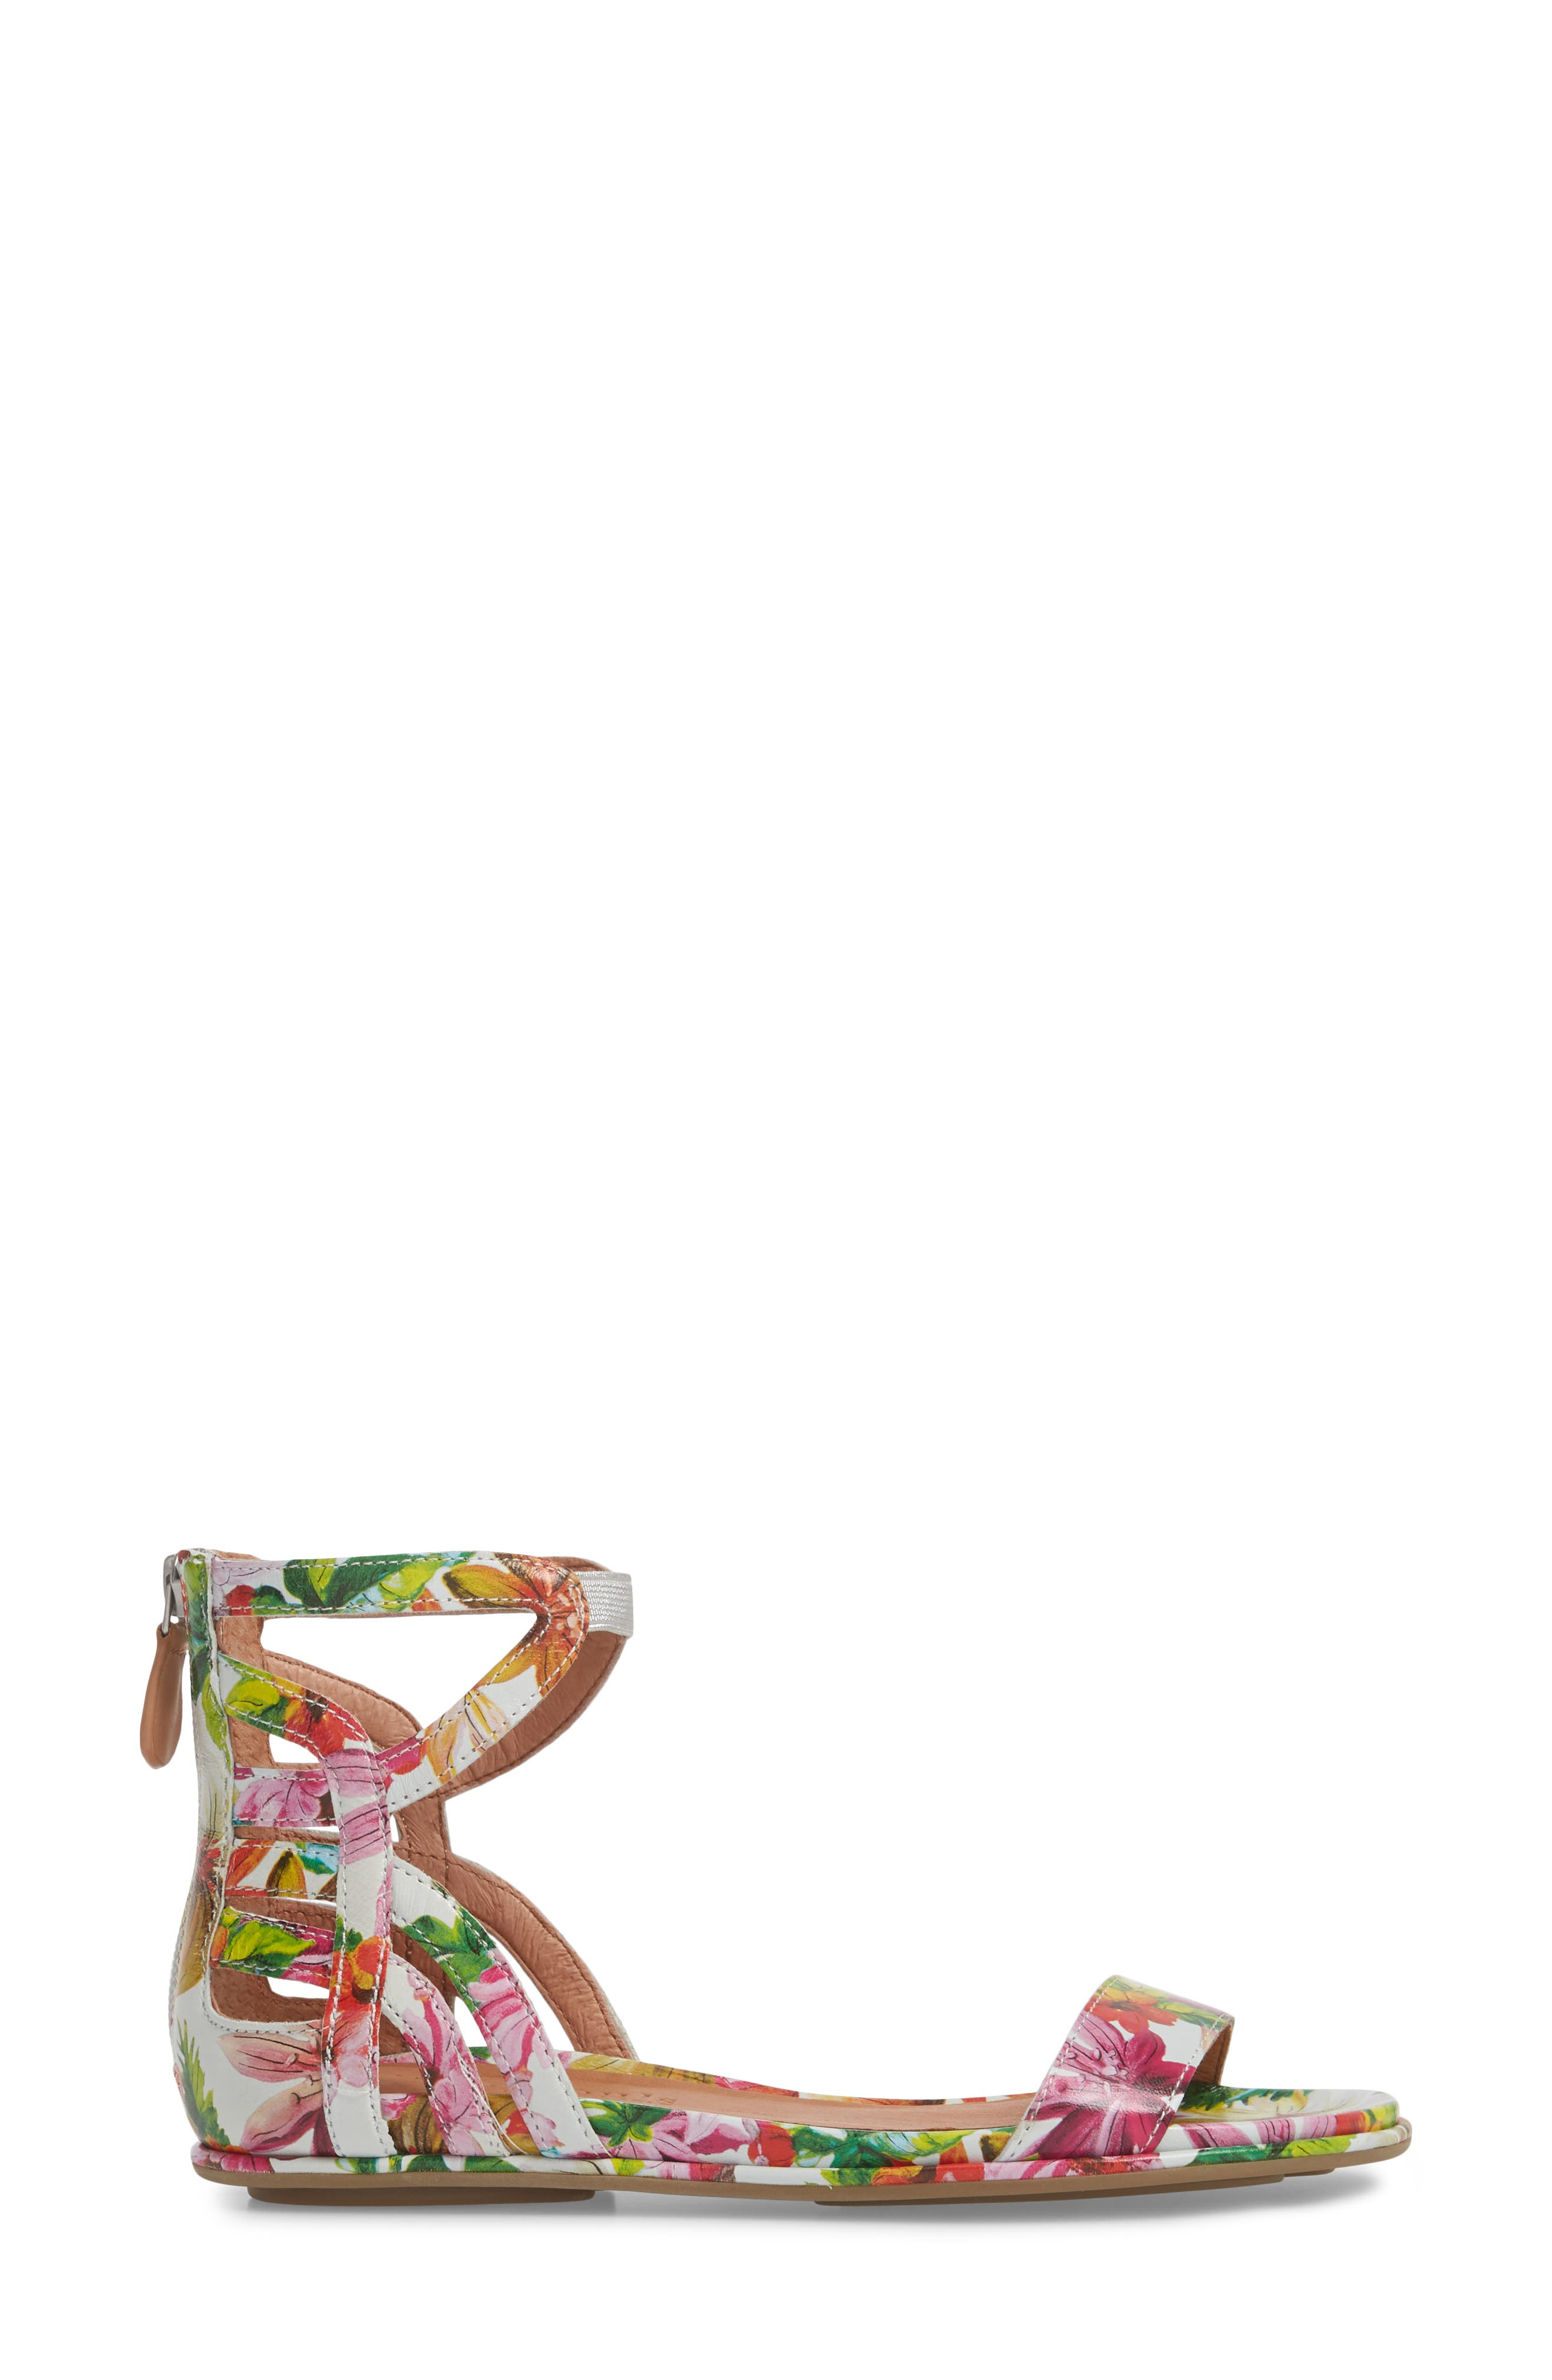 GENTLE SOULS BY KENNETH COLE, Larissa Sandal, Alternate thumbnail 3, color, PALM PRINTED LEATHER